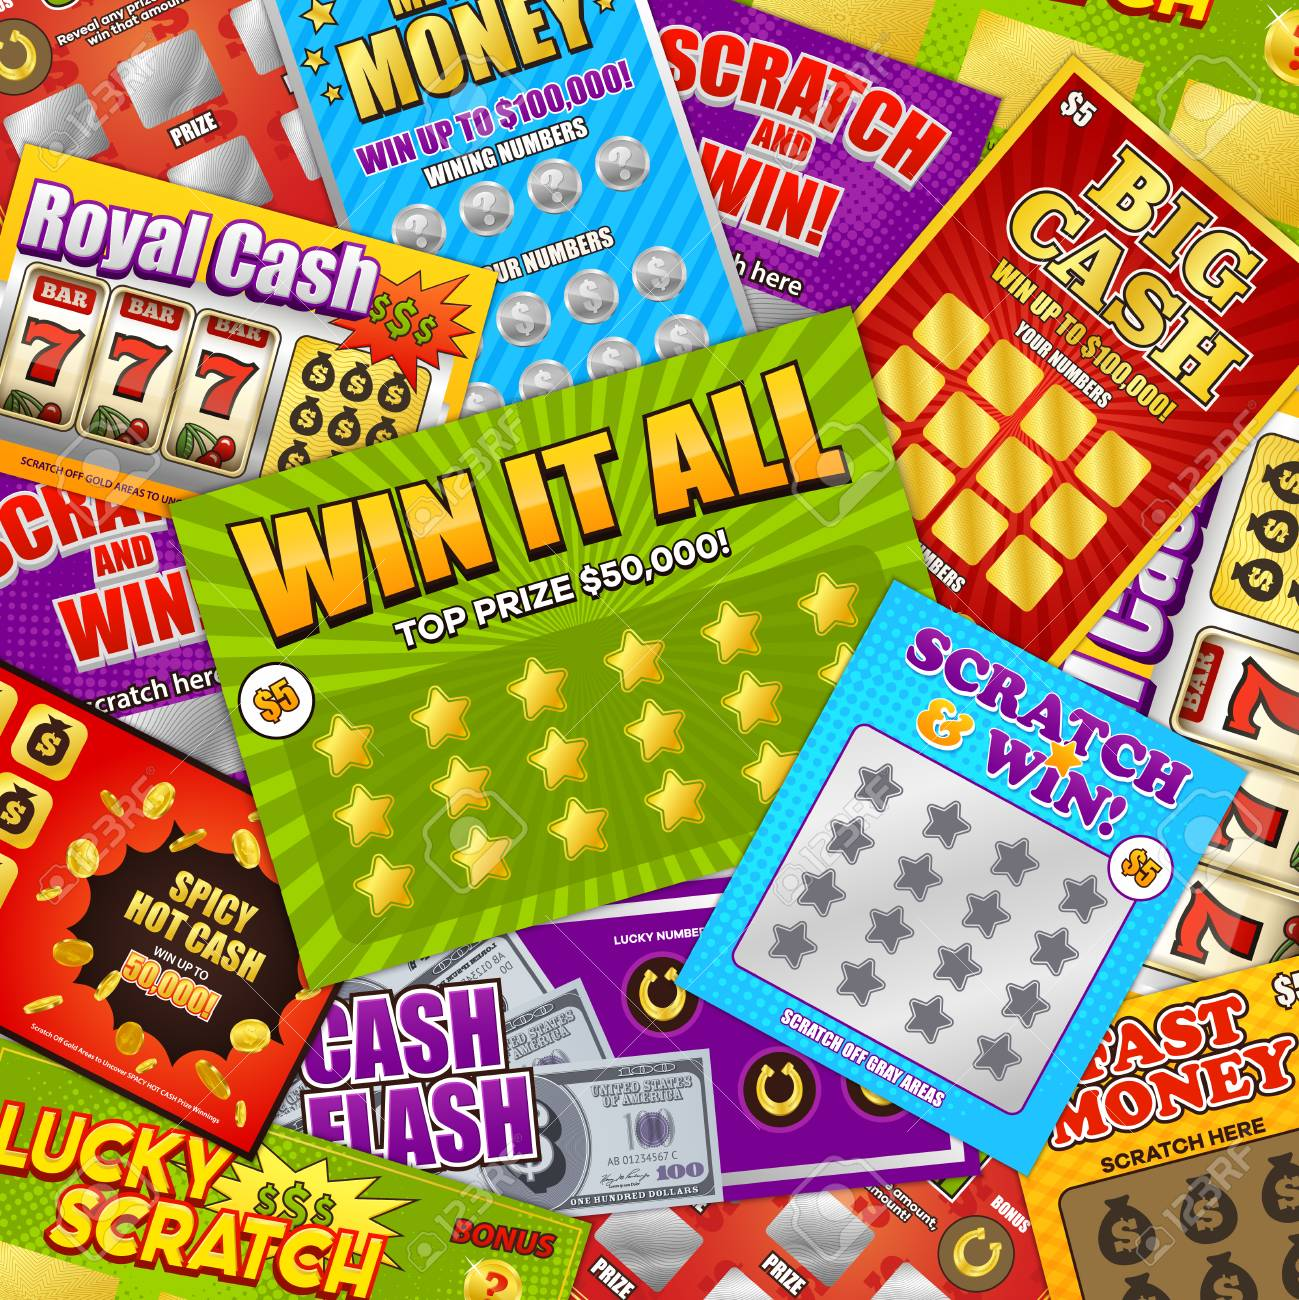 Lottery colorful background design with lucky scratch big cash